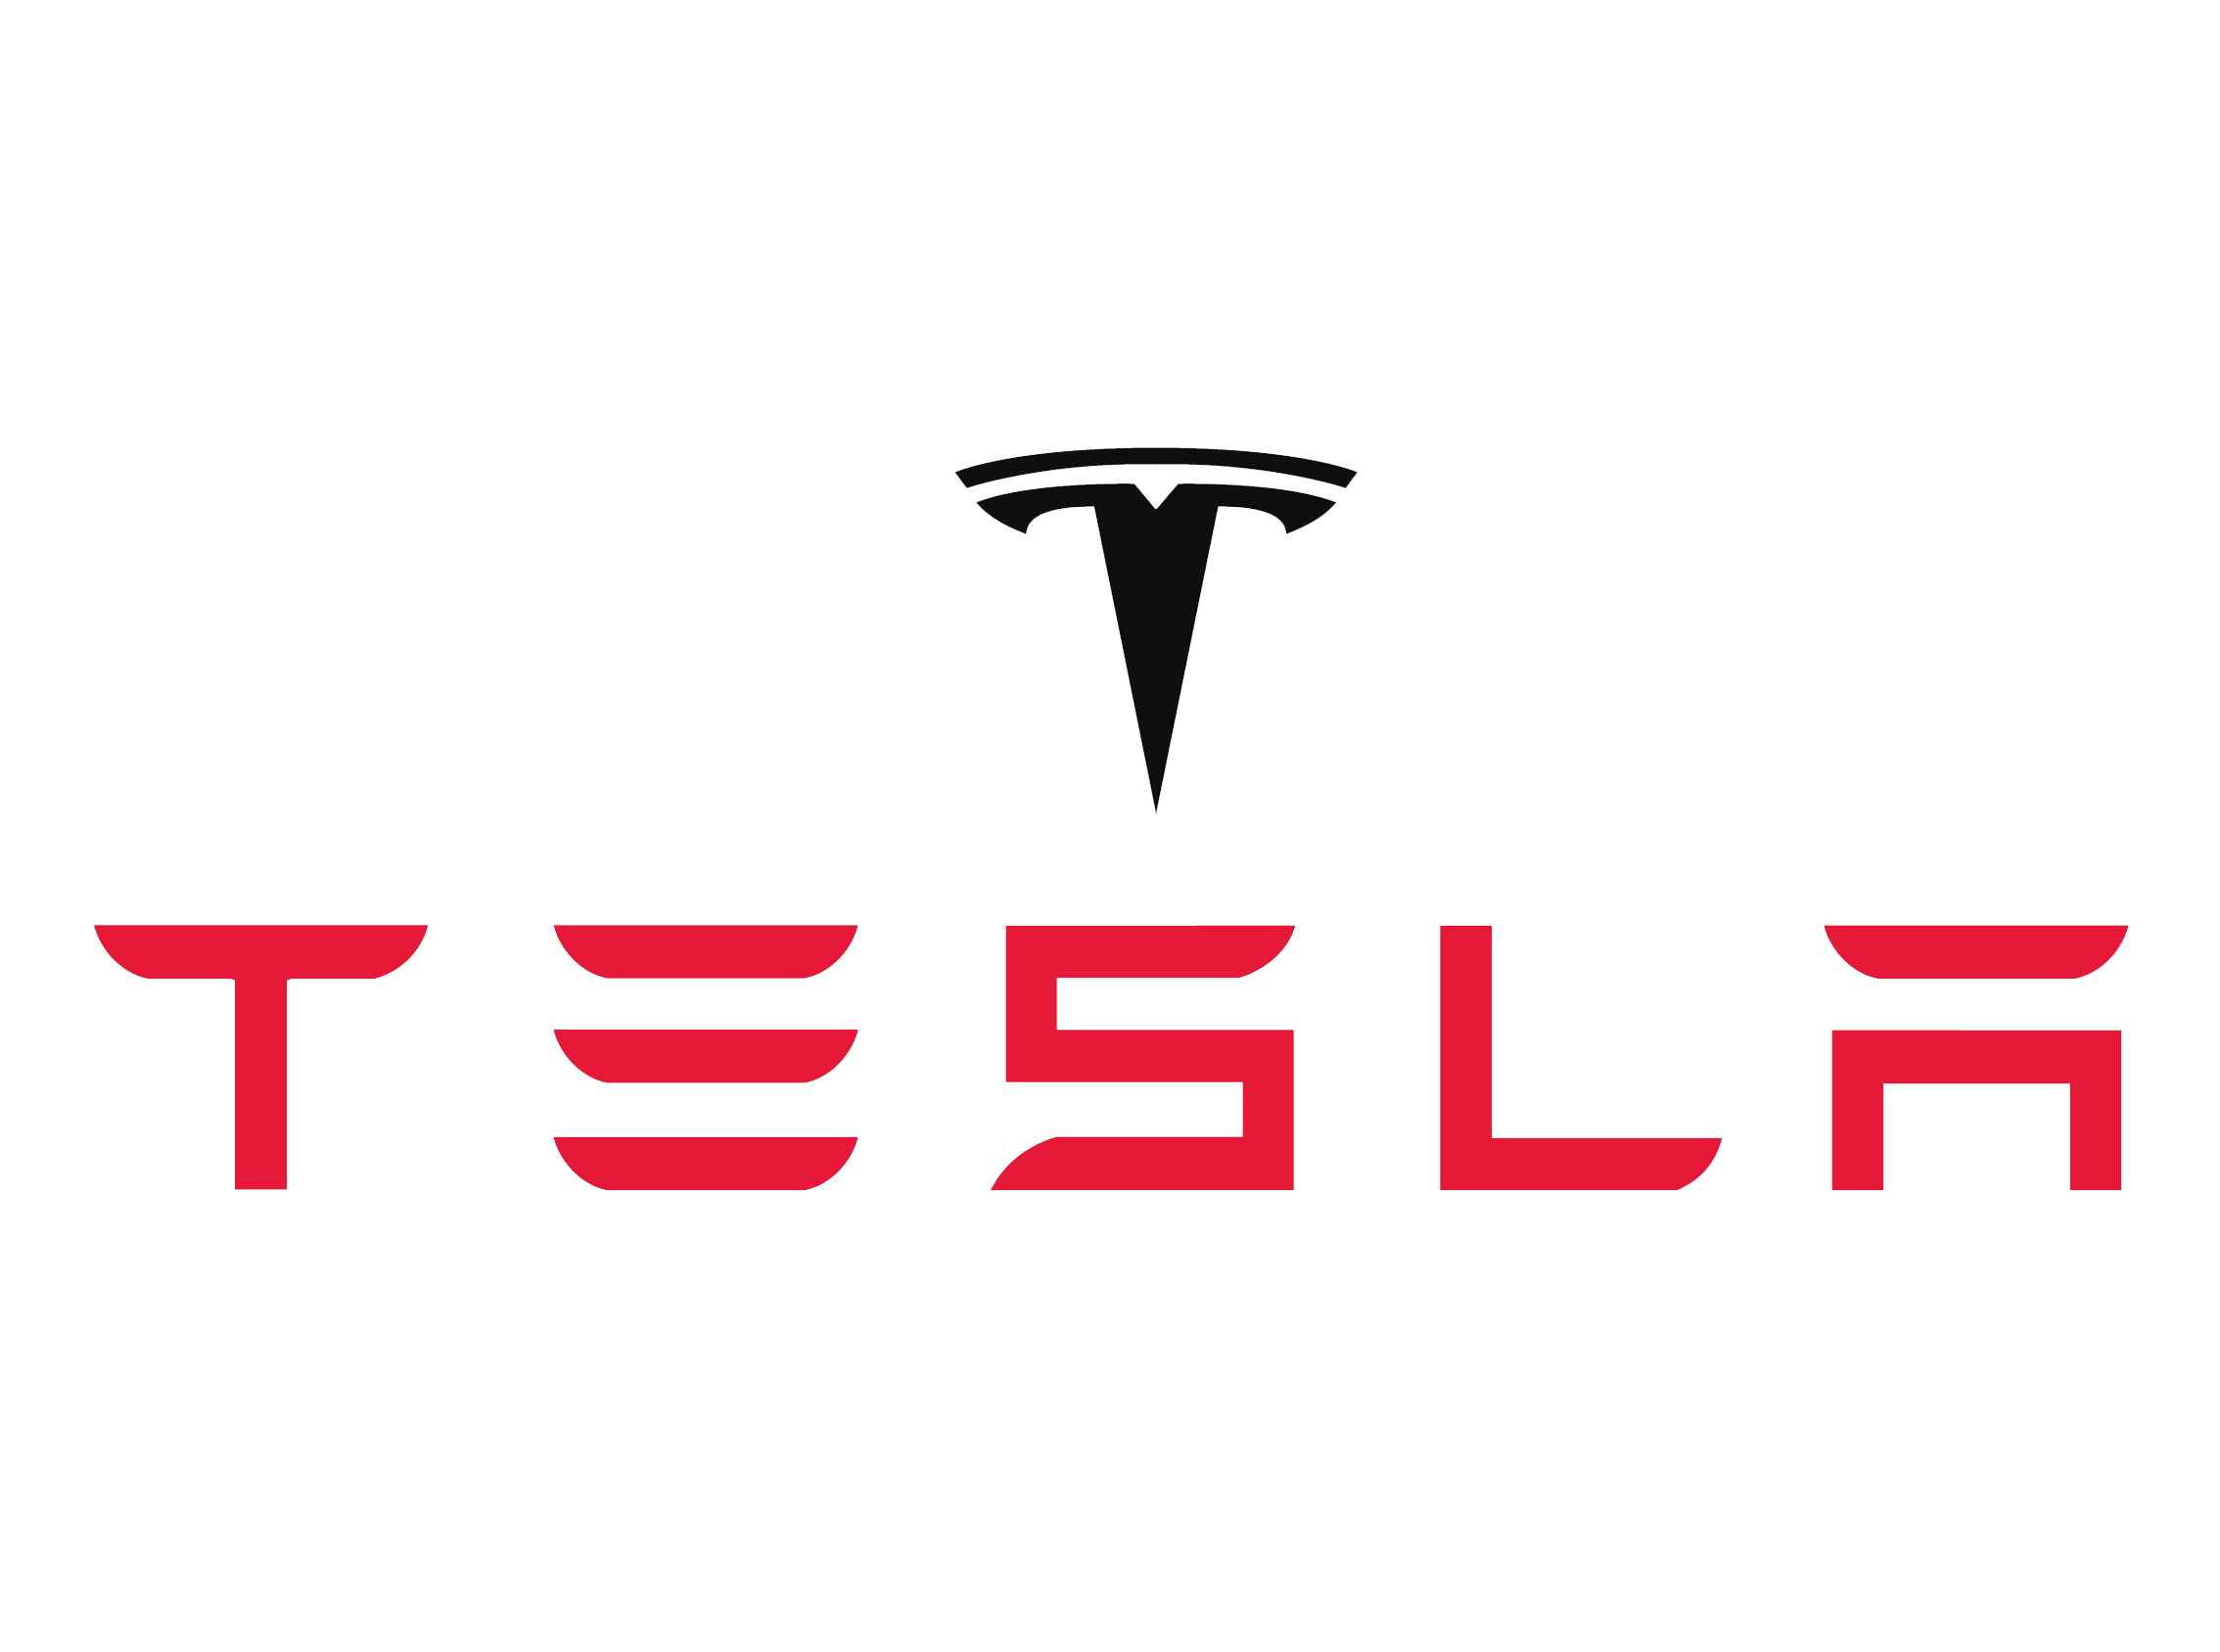 You'll never look at Tesla's logo in the same way again ...